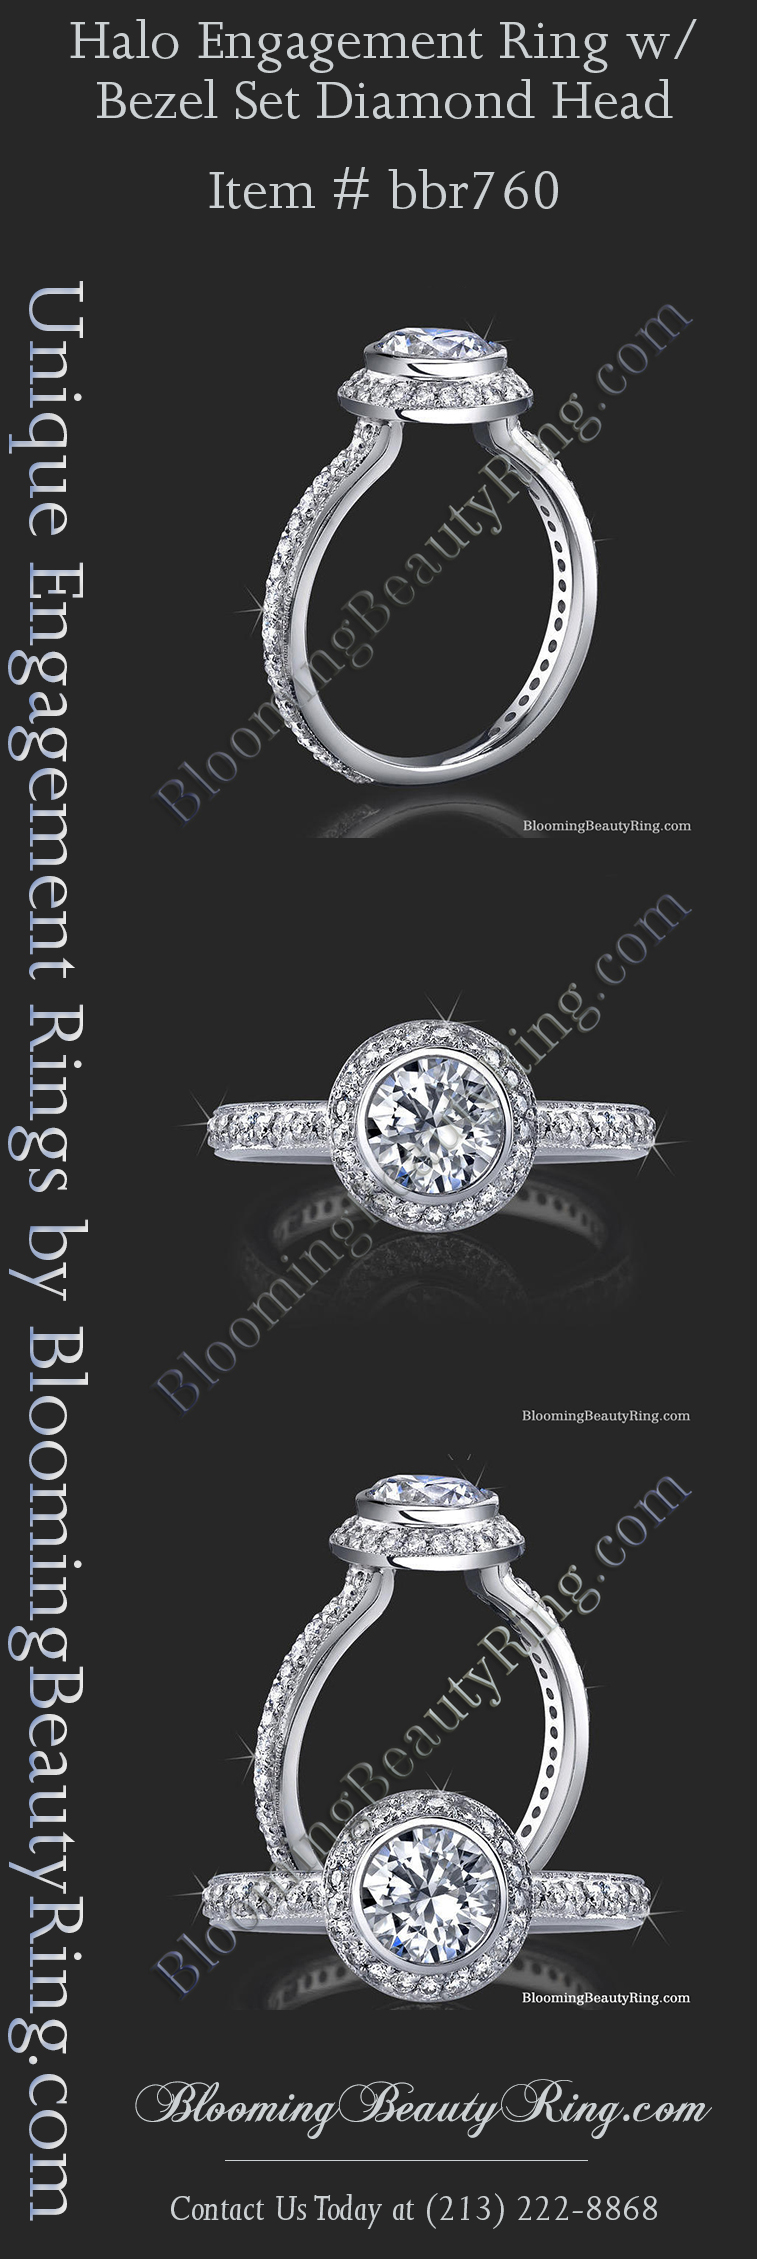 Halo Diamond Engagement Ring available in all metals and all diamond shapes.  Matching wedding bands are also available for all of our diamond engagement rings at BloomingBeautyRing.com  (213) 222-8868